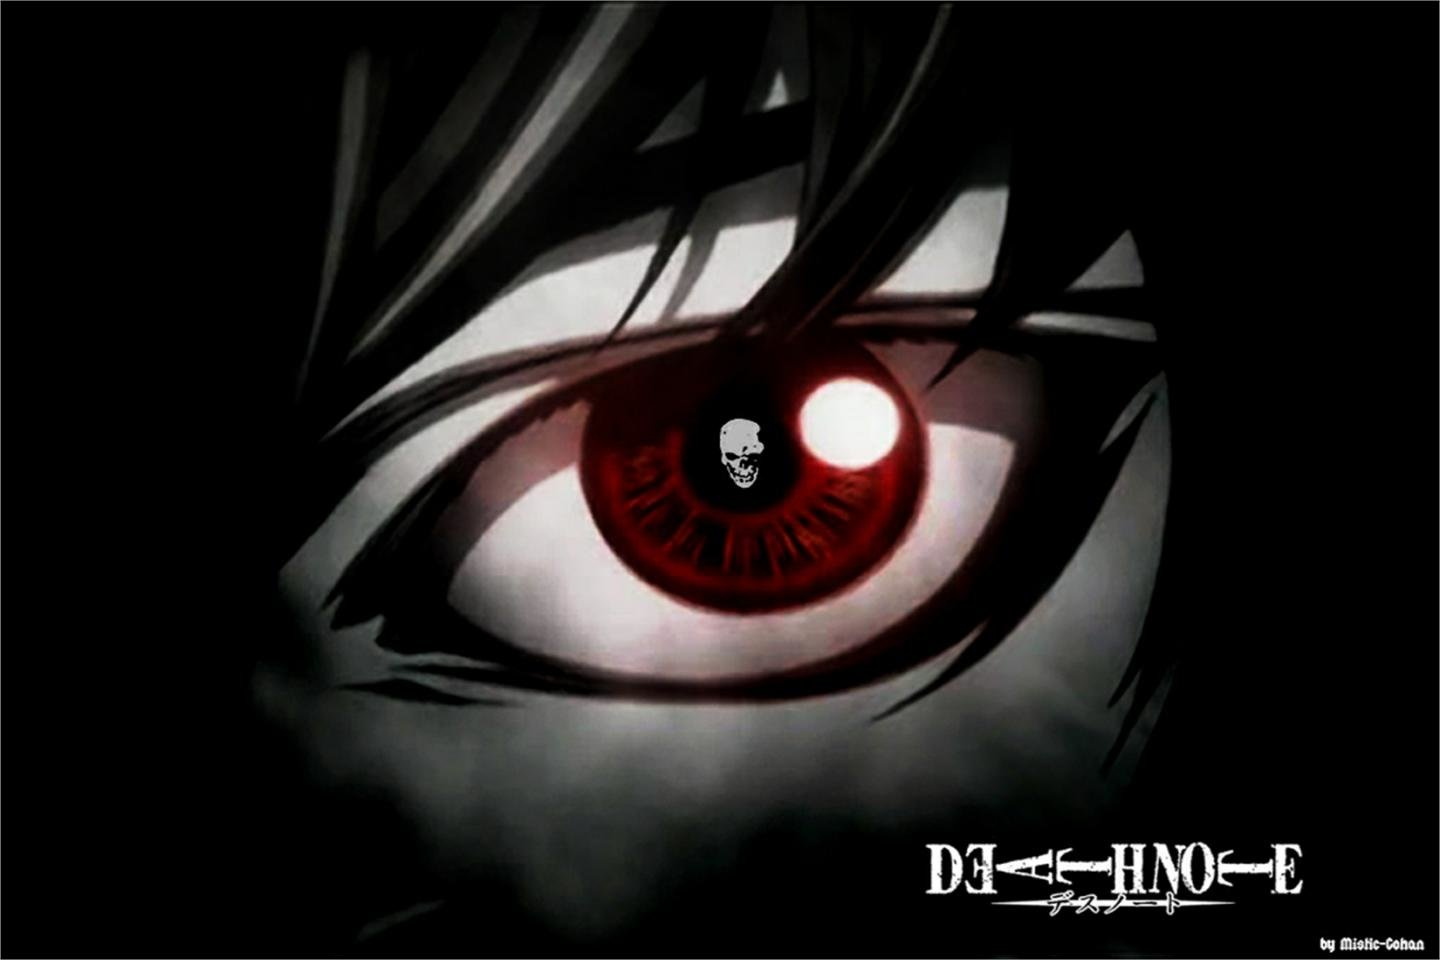 Awesome Death Note free wallpaper ID:402740 for hd 1440x960 desktop